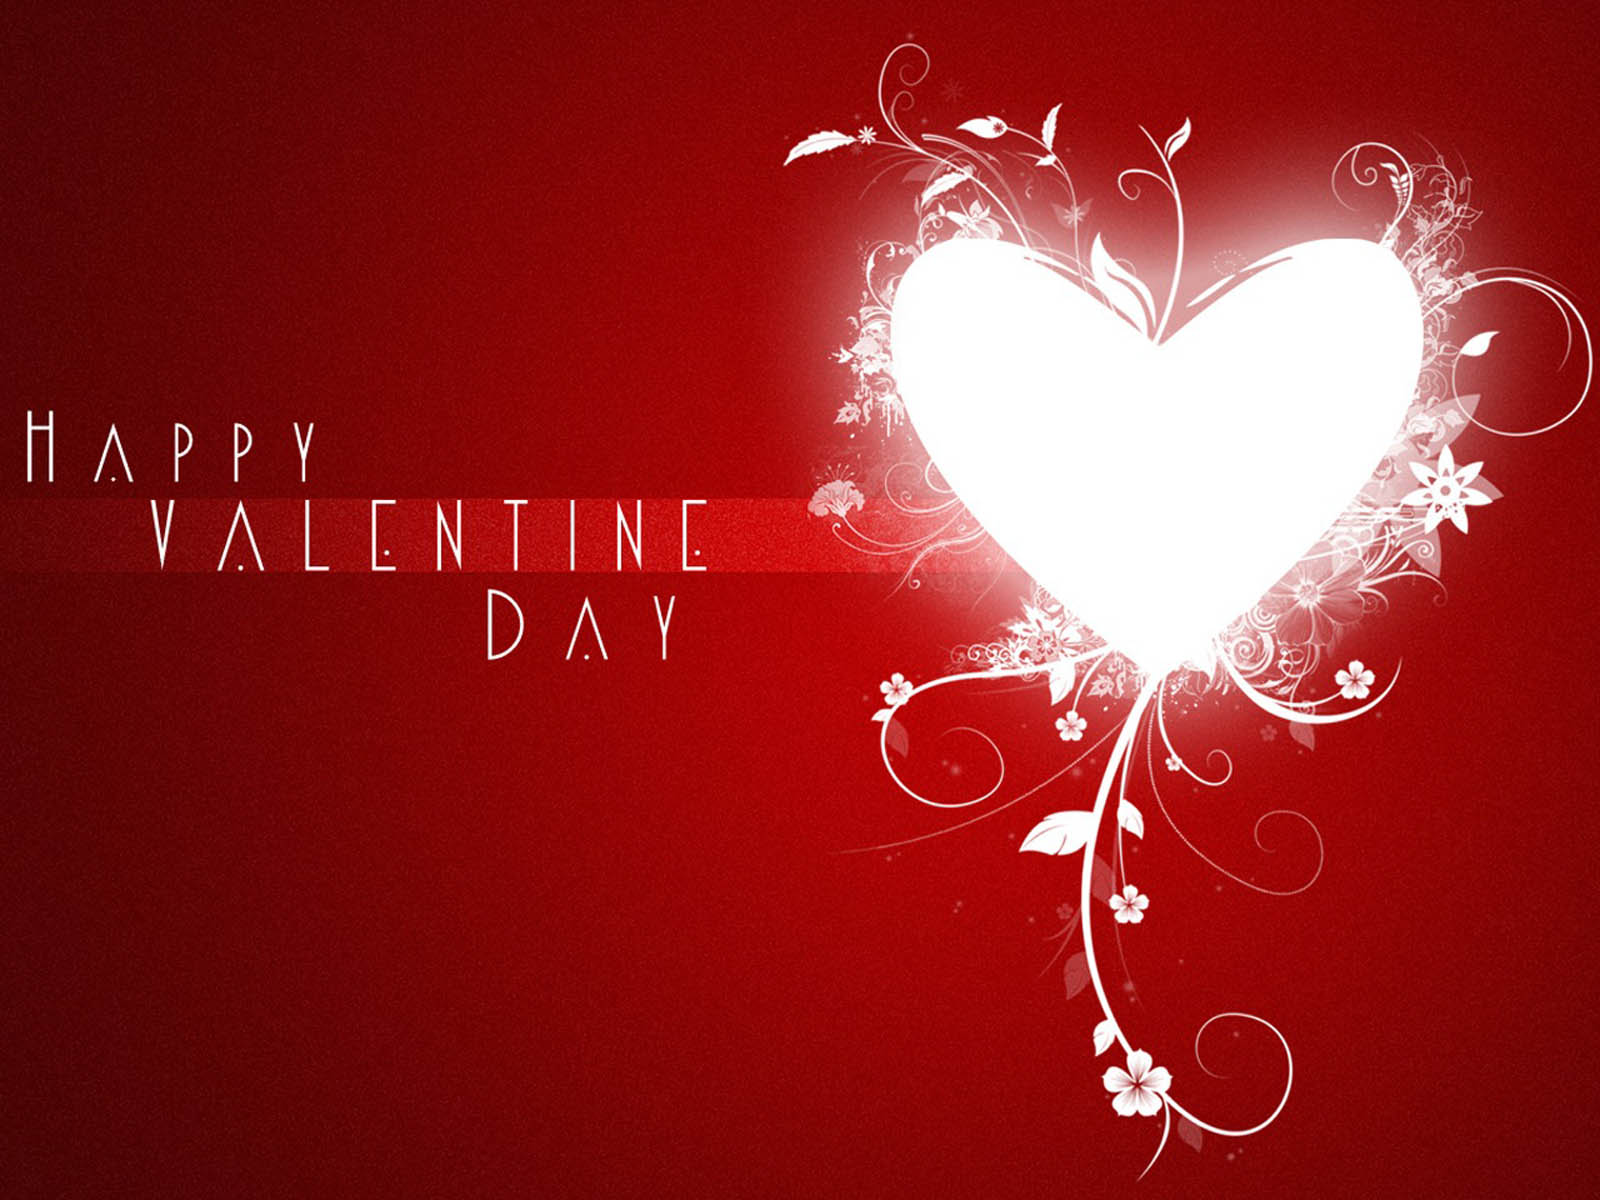 Valentines Day Desktop Wallpapers, Valentines Day Wallpapers